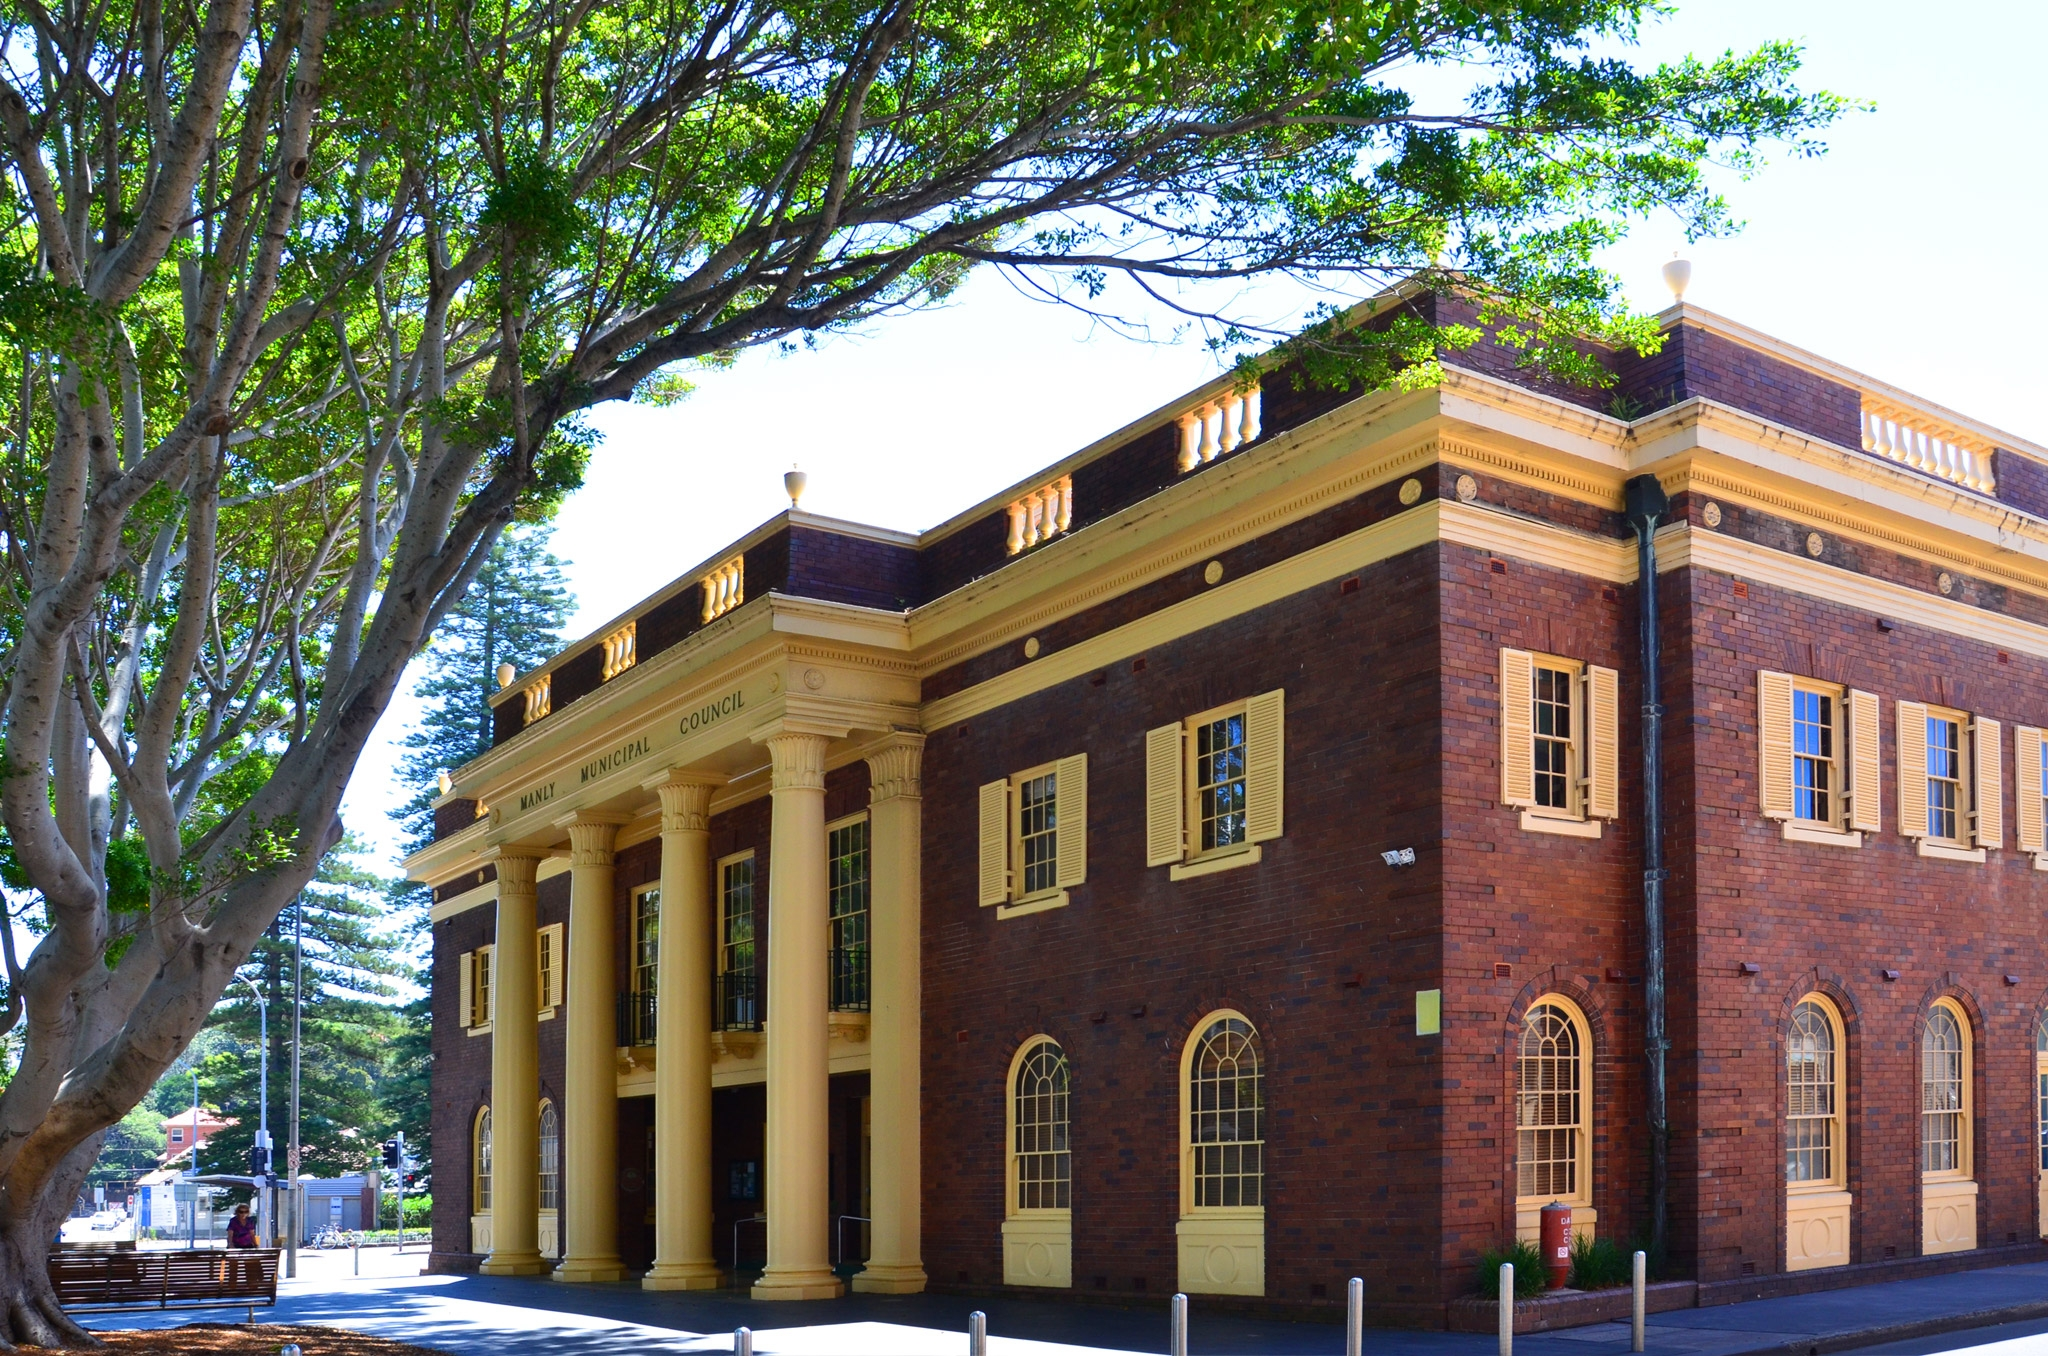 Manly Council Building - Image ©2014 ManlyAustralia.com